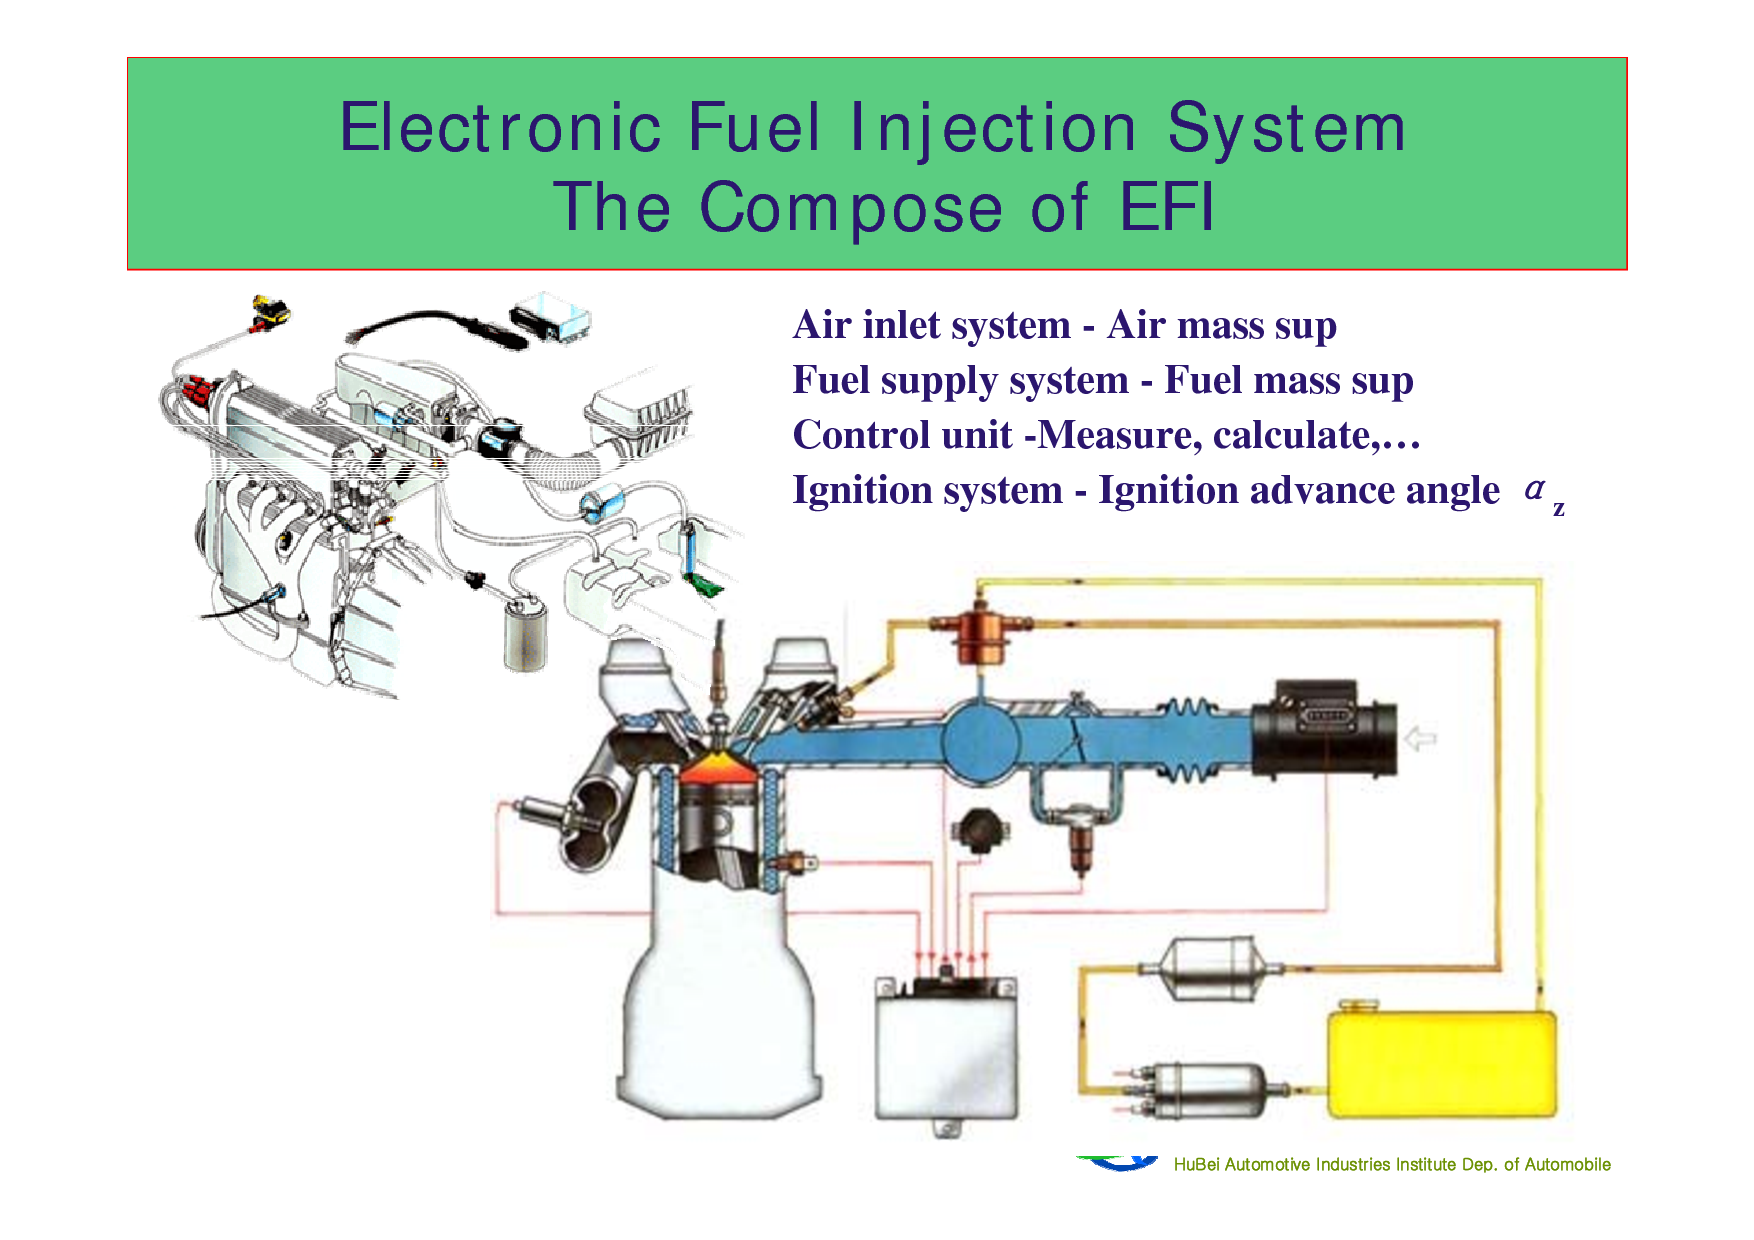 electronic fuel injection system research paper pdf mustai datsun electronic fuel injection wiring diagrams electronic fuel systems #2